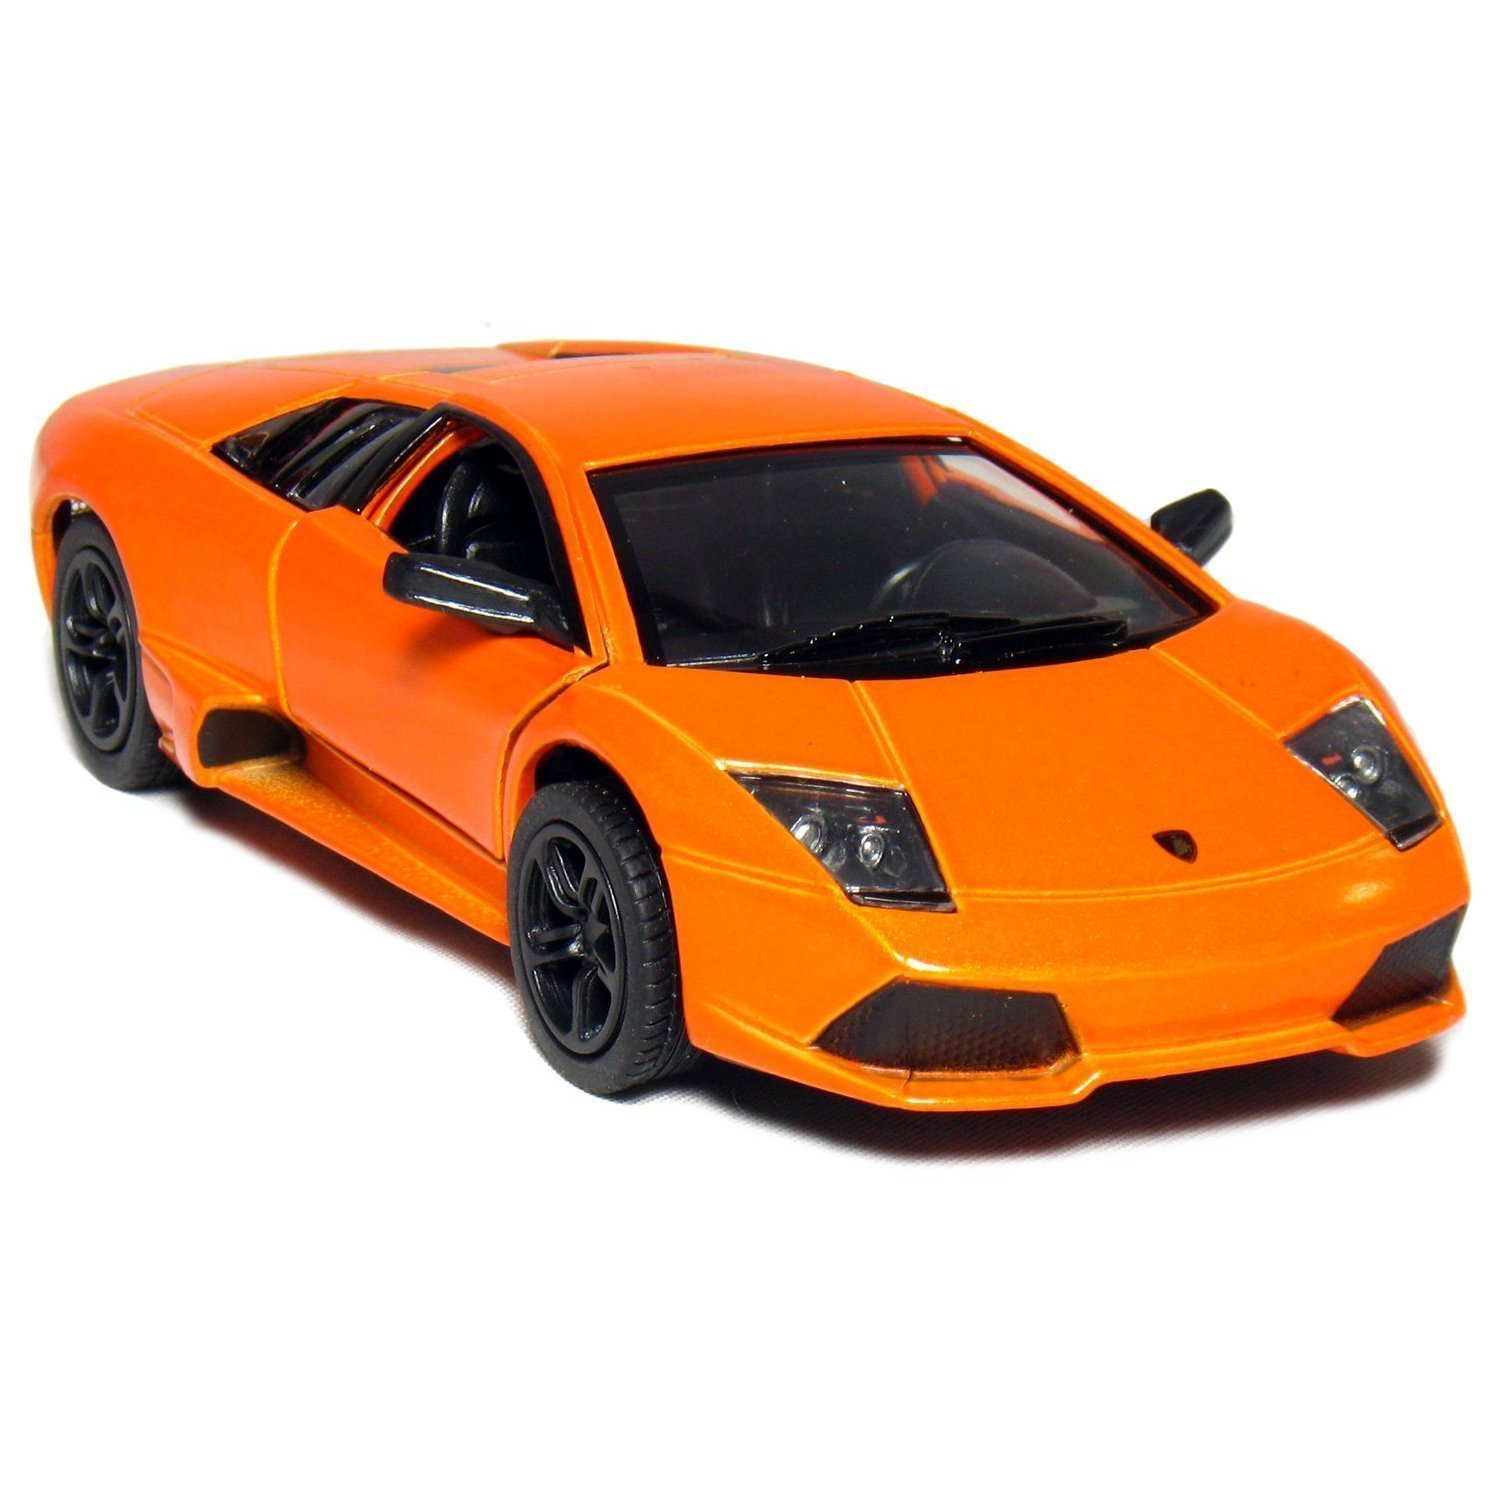 Buy Kinsmart 1 36 Scale Lamborghini Murcielago Lp640 Orange Online